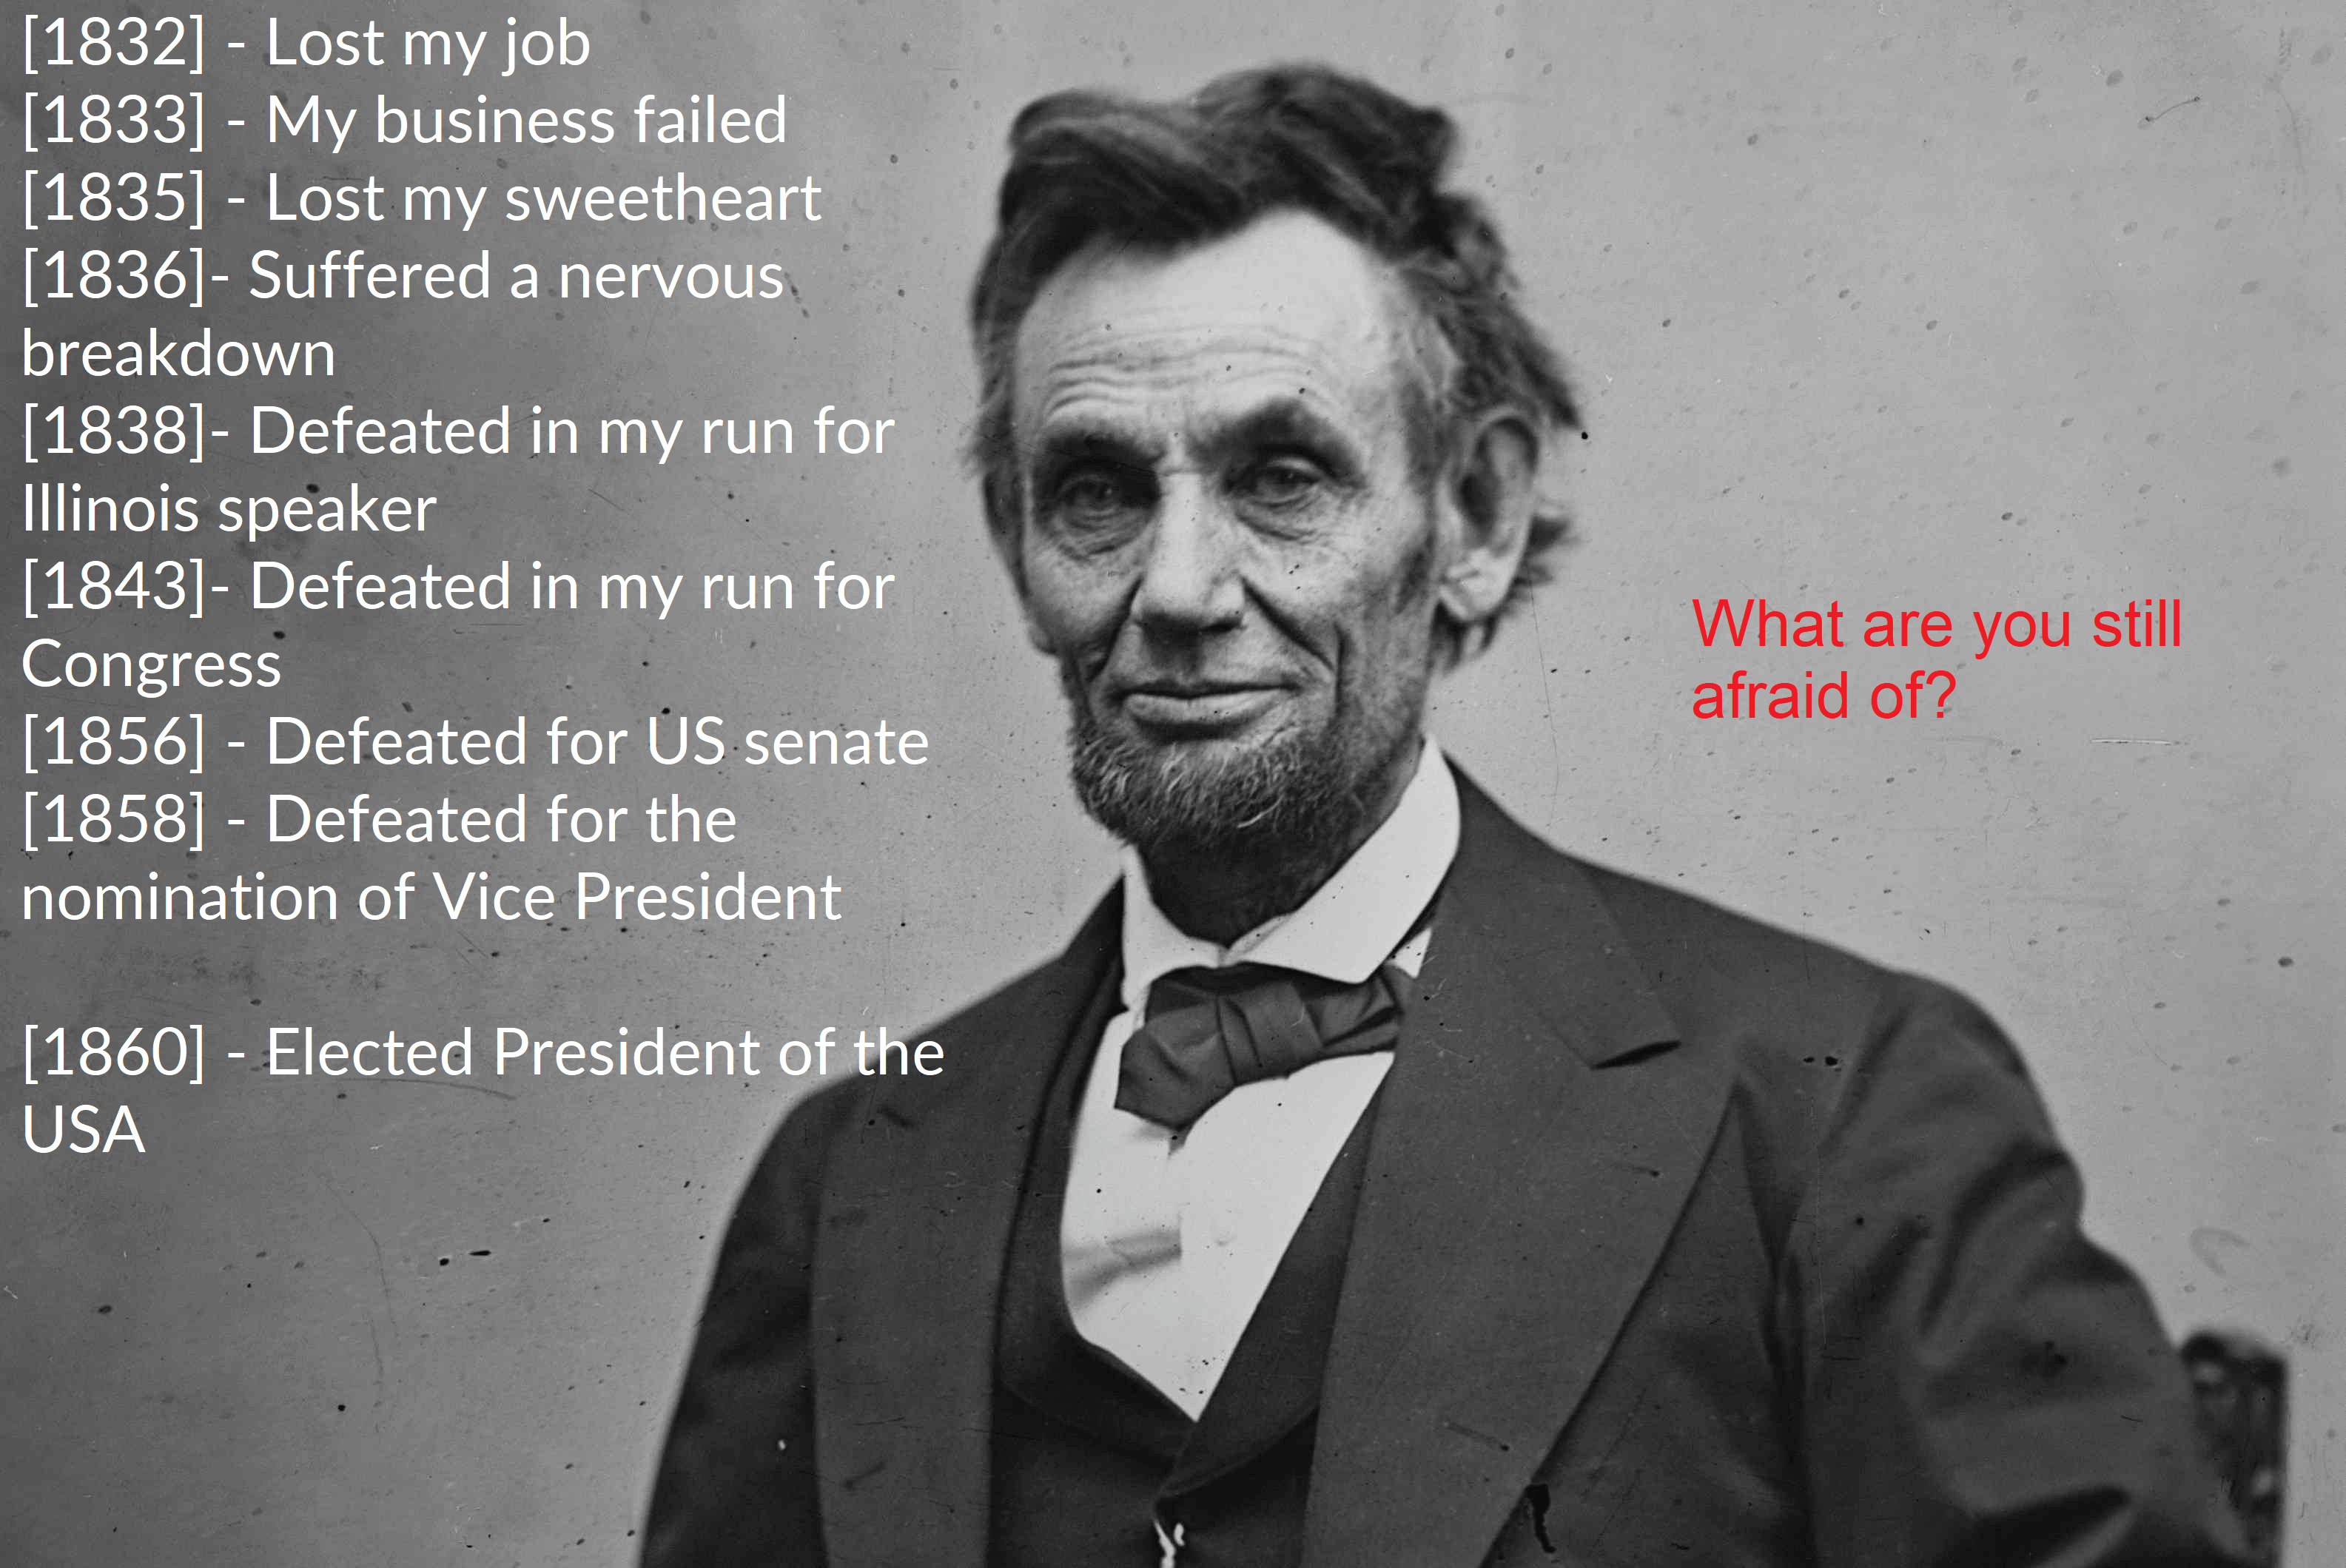 [Image] Abe Lincoln shows us we shouldn't be afraid